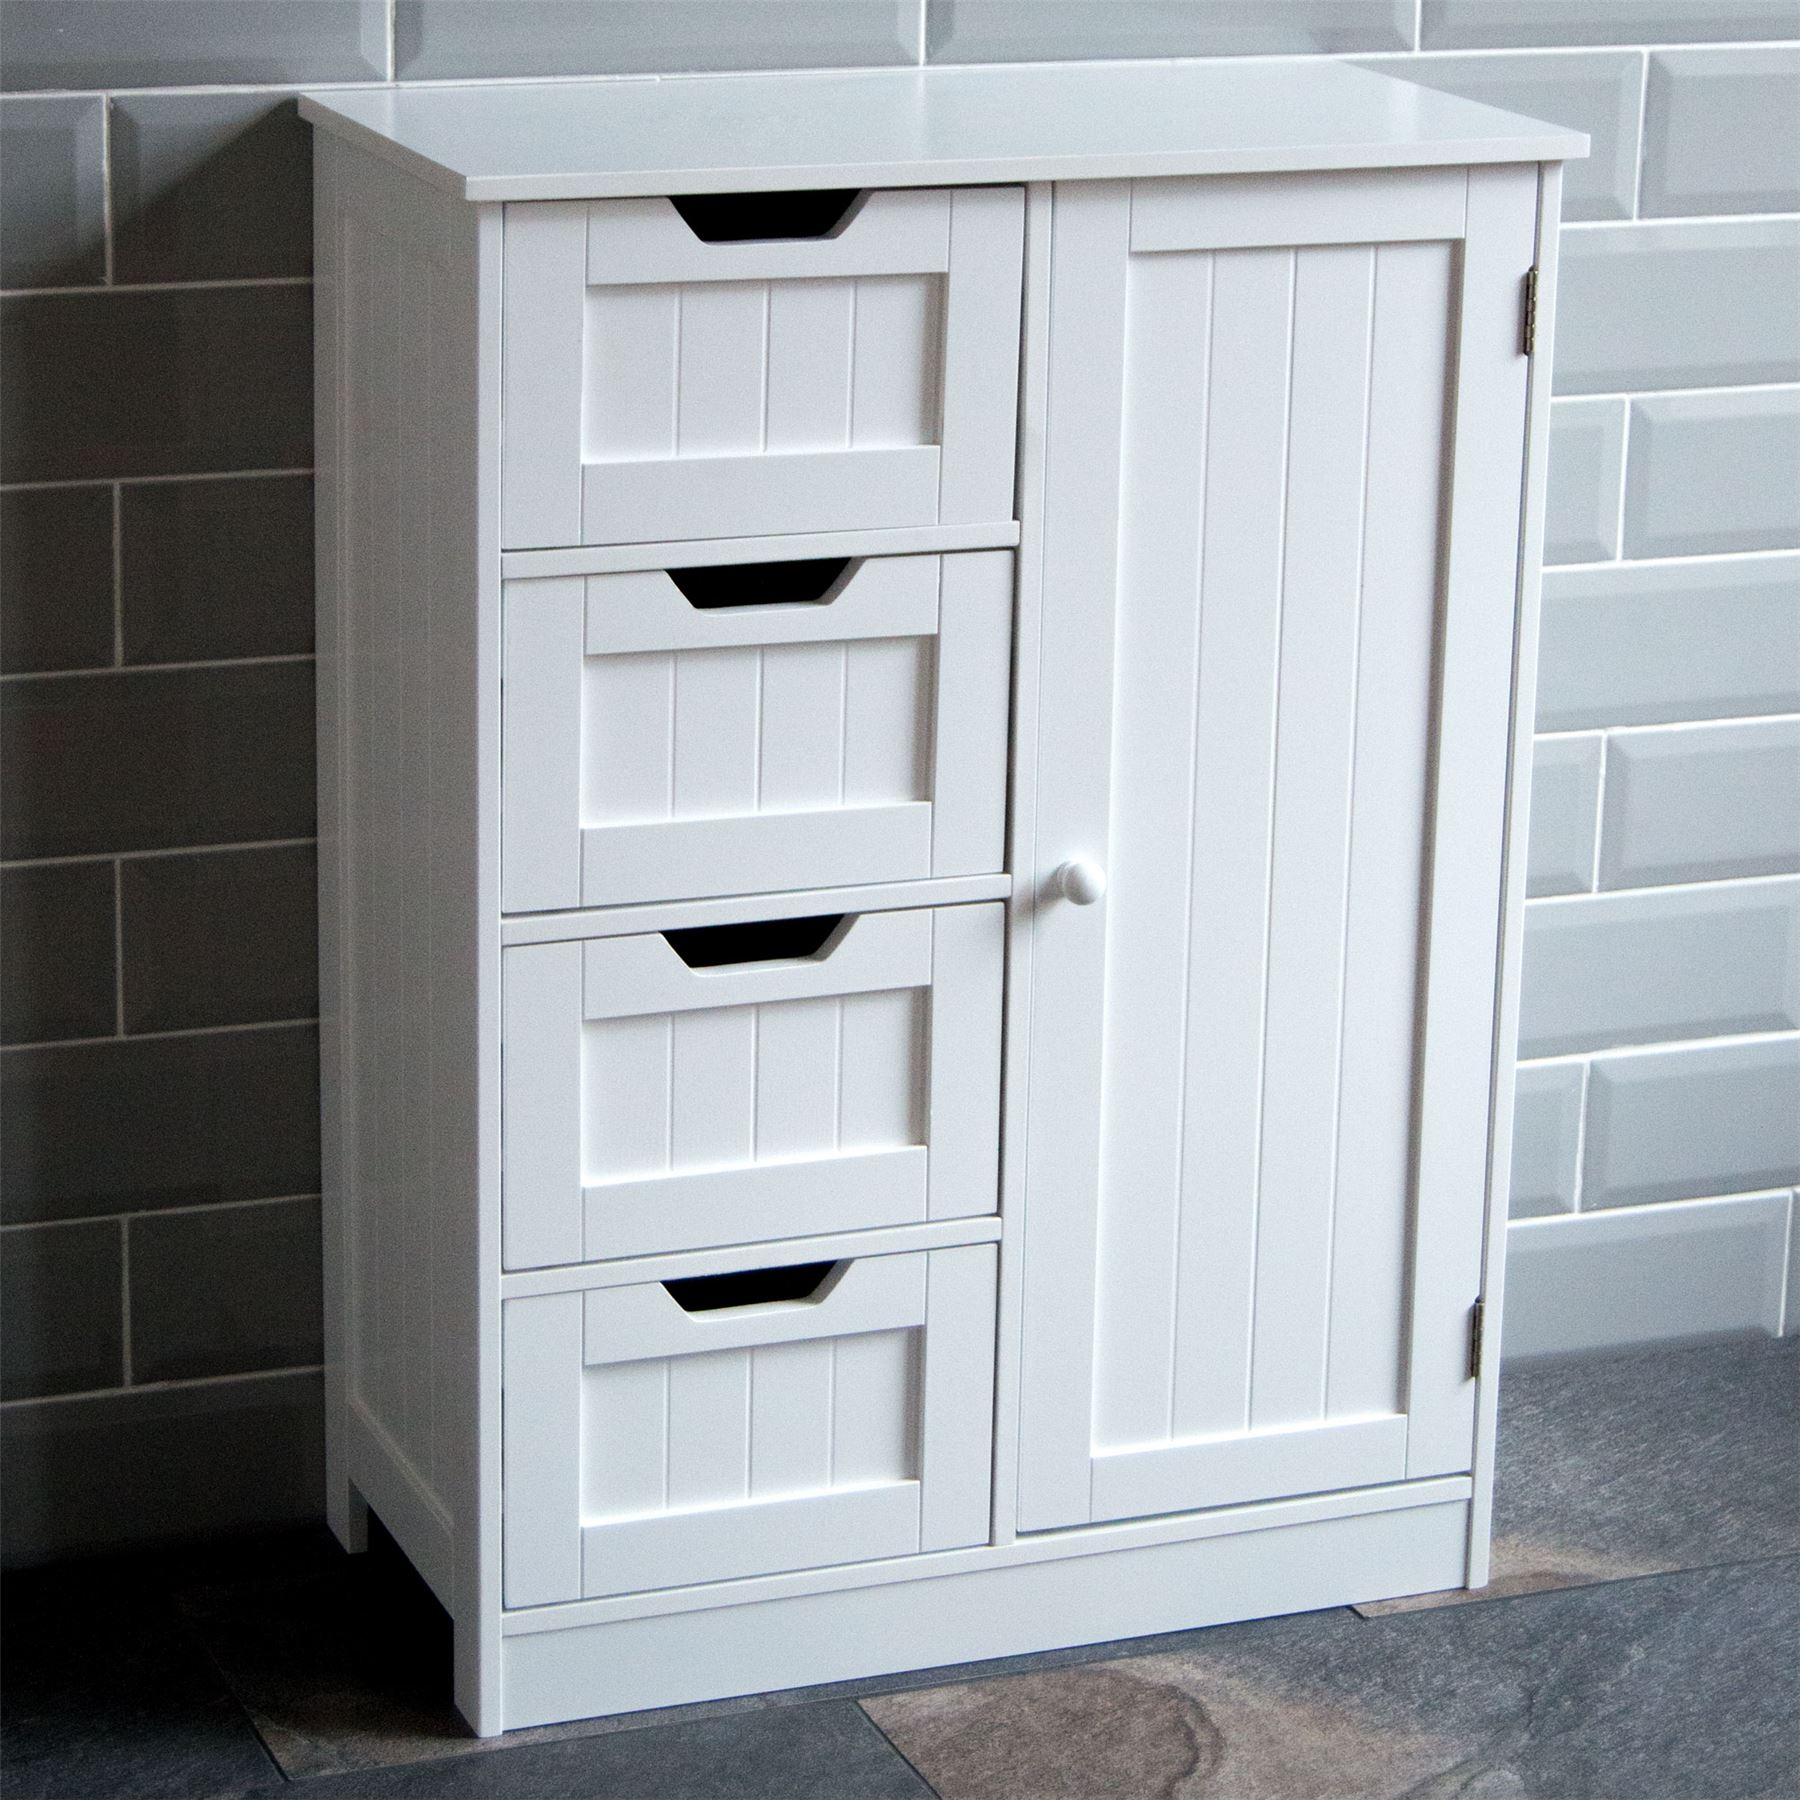 Details About Bathroom 4 Drawer Cabinet Door Storage Cupboard Wooden White Home Discount for sizing 1800 X 1800